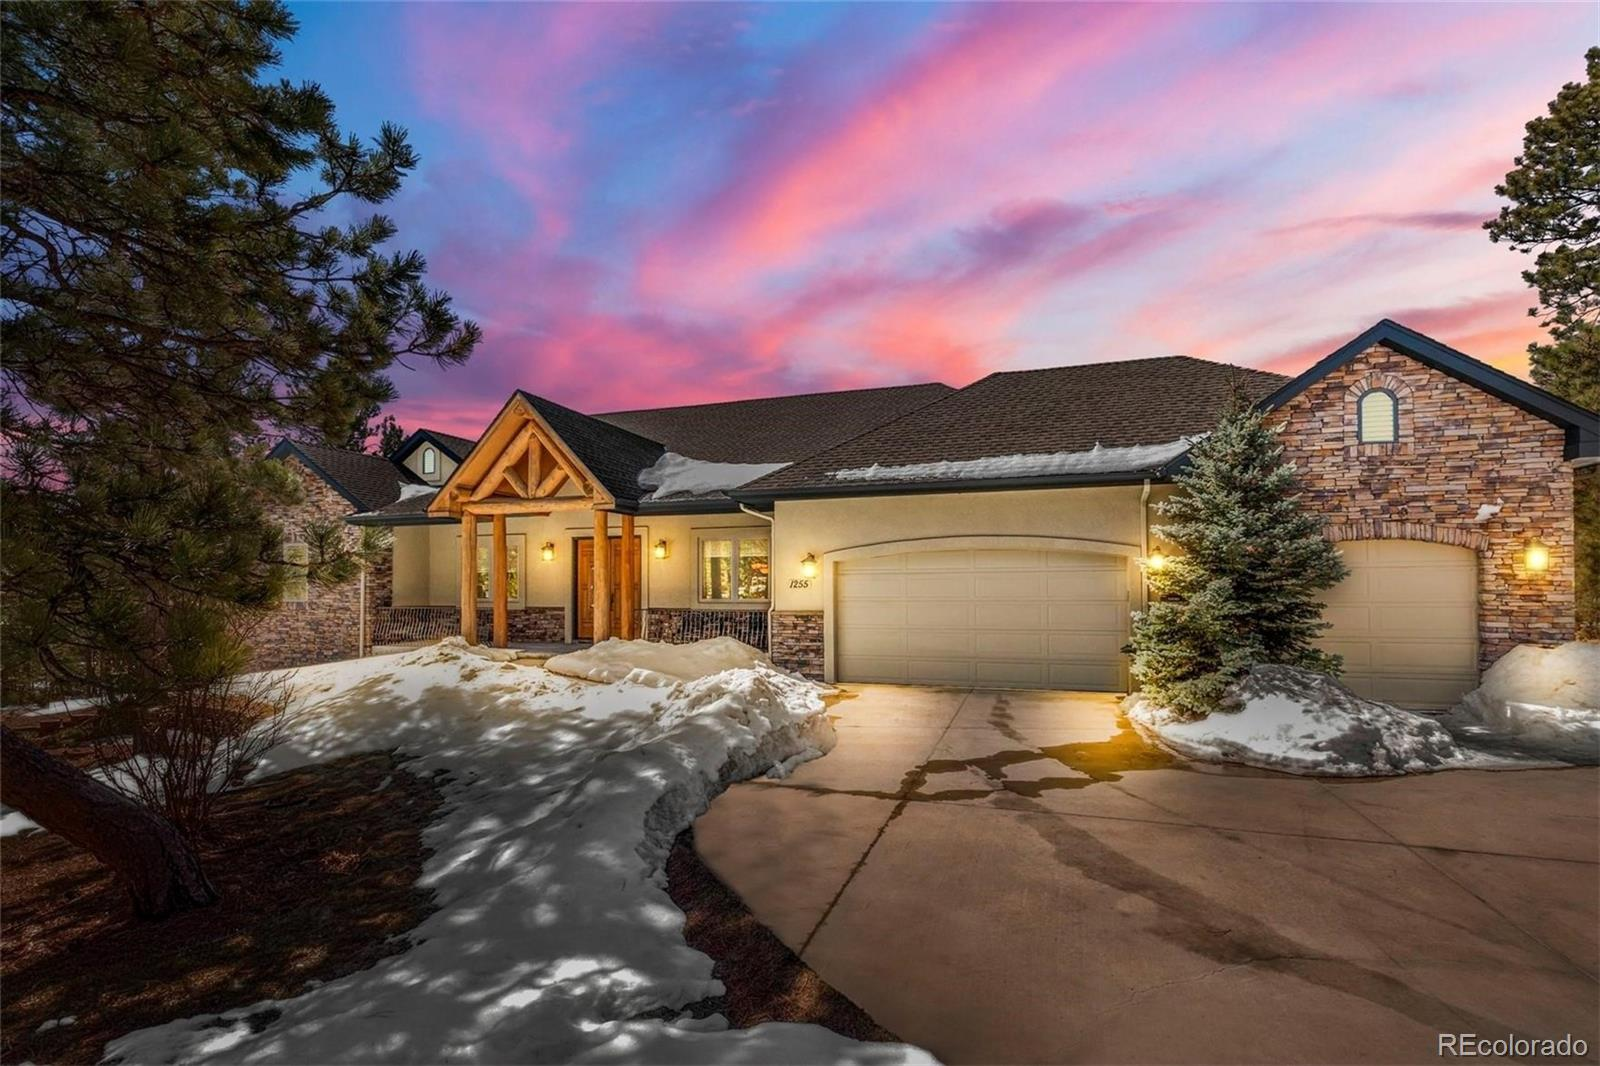 Expansive custom rancher with almost 5,000 square feet, phenomenal Pikes Peak and mountain views on 3.31 acres of matures pines with tons of privacy. Close in location on a quiet cul-de-sac west of Highway 83 in the desirable Bent Tree community. Welcoming entry with a covered front porch and a double front door entry. Both levels of the home have 10ft ceilings. Upon entering the home you enter into a large, bright foyer w/ slate tile open to the great room. The great room is spacious with large windows to take in the fantastic mountain views, custom built-ins and a gas fireplace with slate surround. Large 22x11 composite back deck with patio furniture included. Well appointed kitchen with high end cabinetry, granite counters, under cabinet lighting, a double oven, an abundance of cabinetry, hardwood floors, kitchen eating nook and a gas cook-top. Formal dining w/ crown molding and tons of space which would accommodate an 8 person dining room table. Spacious master suite with a walk-out to a private composite deck, walk-in closet w/ built-ins, tons of natural light and a 5 piece bath. Main level office w/ french doors and custom built-ins and desk are included. Large main level mud room/laundry room with storage, seating and a utility sink. Finished walk-out lower level with 3 bedrooms, 2 baths, a game area and the family room w/ a wet bar and fireplace which walks out to the large lower back patio. Secondary suite bedroom in the lower level w/ large walk-in and a private bath. Central air conditioning. The home has been exceptionally maintained and is in great condition. Low maintenance stucco and stone exterior w/ composite decks. Beautiful landscaping w/ a chipping green area. All paved roads to property with a paved driveway. All bedrooms have walk-in closets. Attached, finished and insulated oversized 3 car garage. Close to the amenities of Northgate and Monument w/ great access to I-25, Highway 83 and the Air Force Academy. Award winning School District 38.